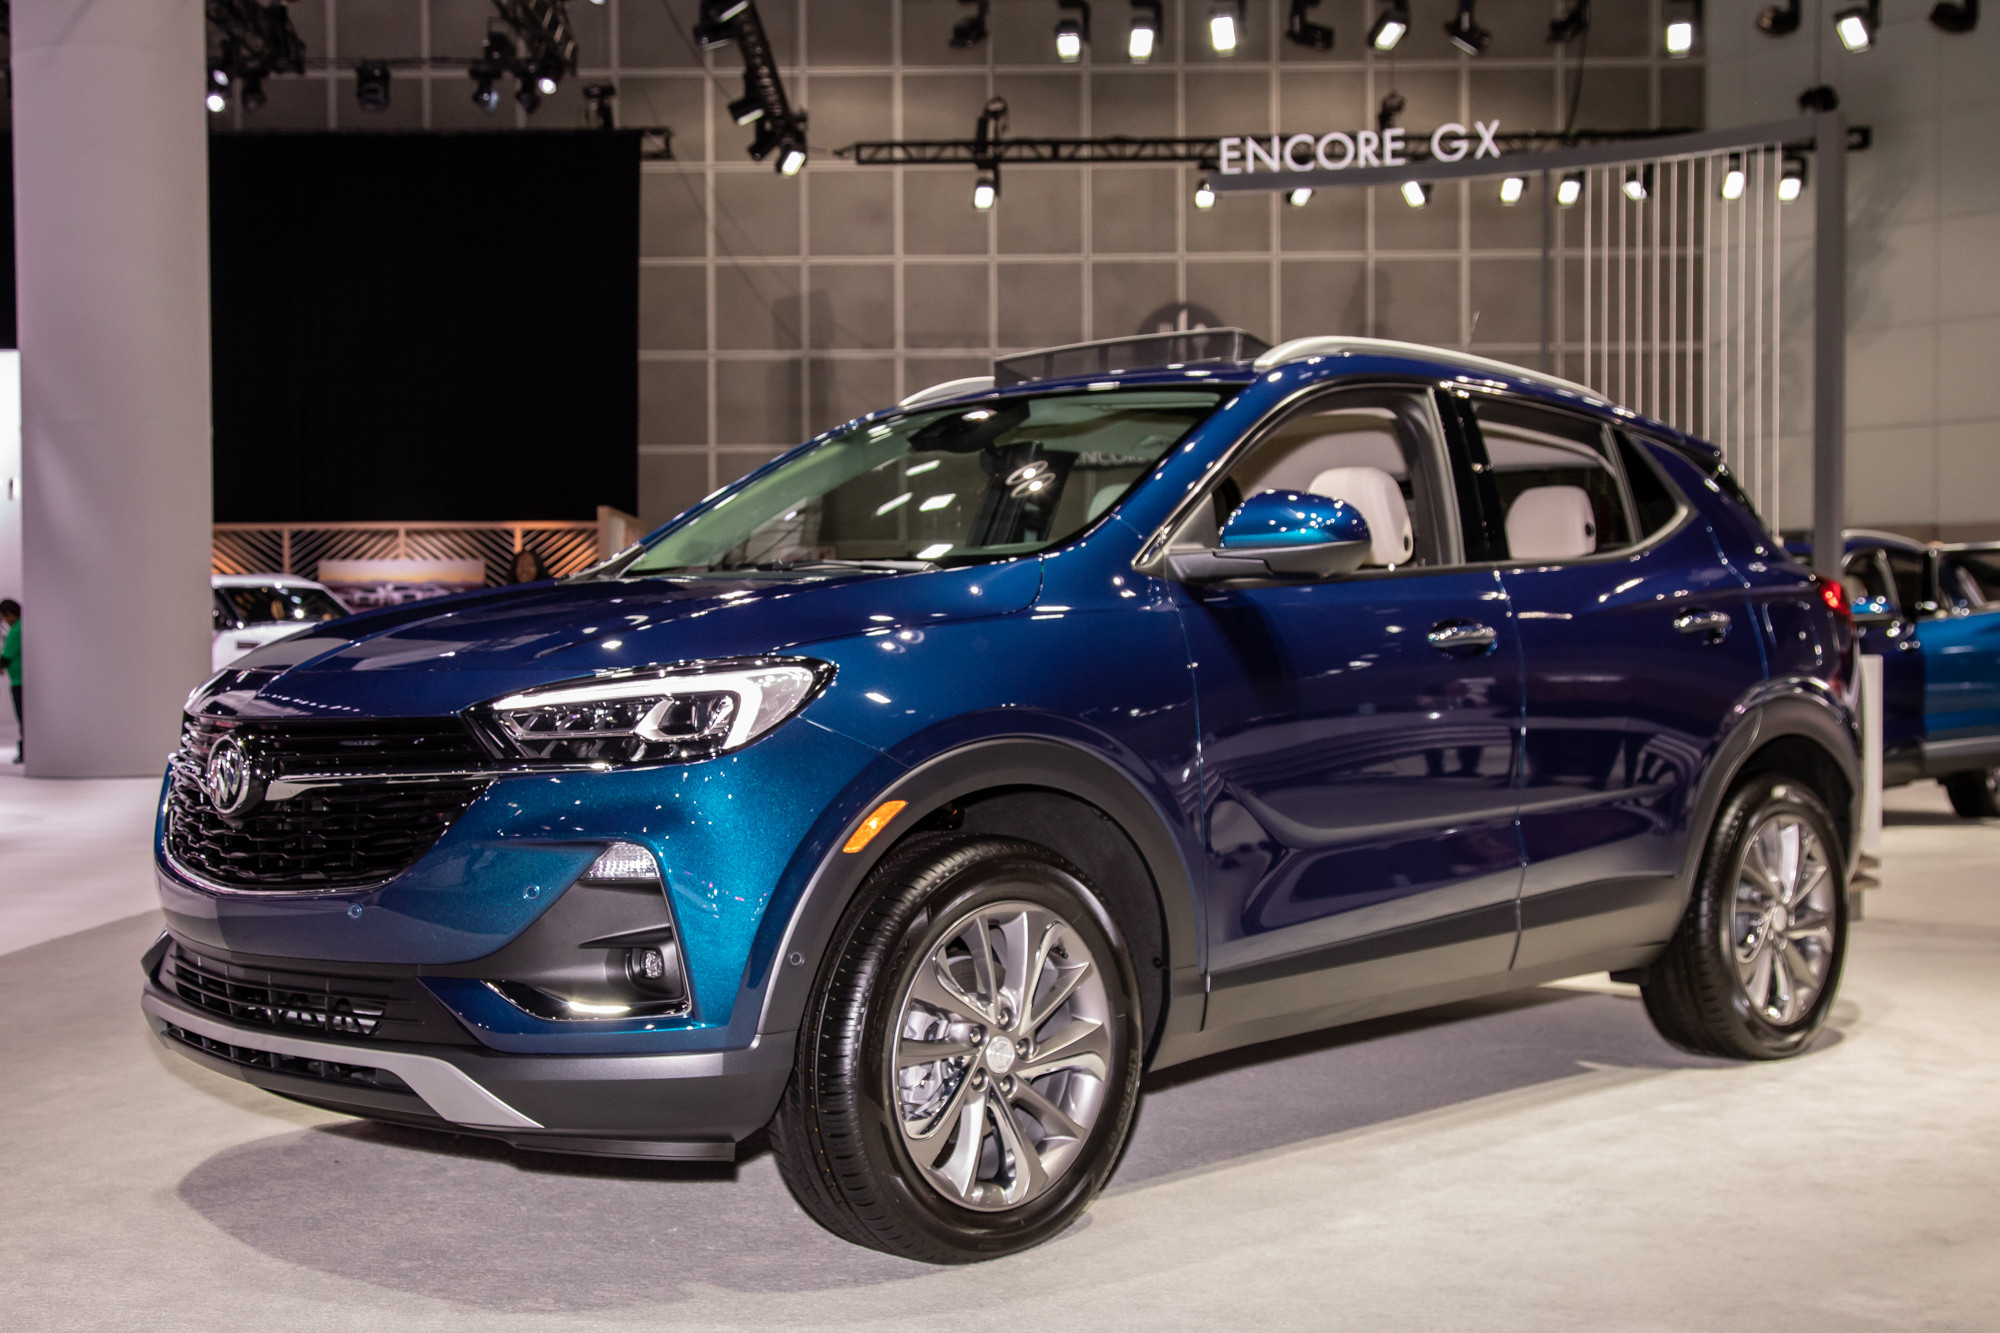 2020 Buick Encore Gx: Big Surprise In A Small Package | News 2021 Buick Encore Gx Test Drive, Engine, Reviews